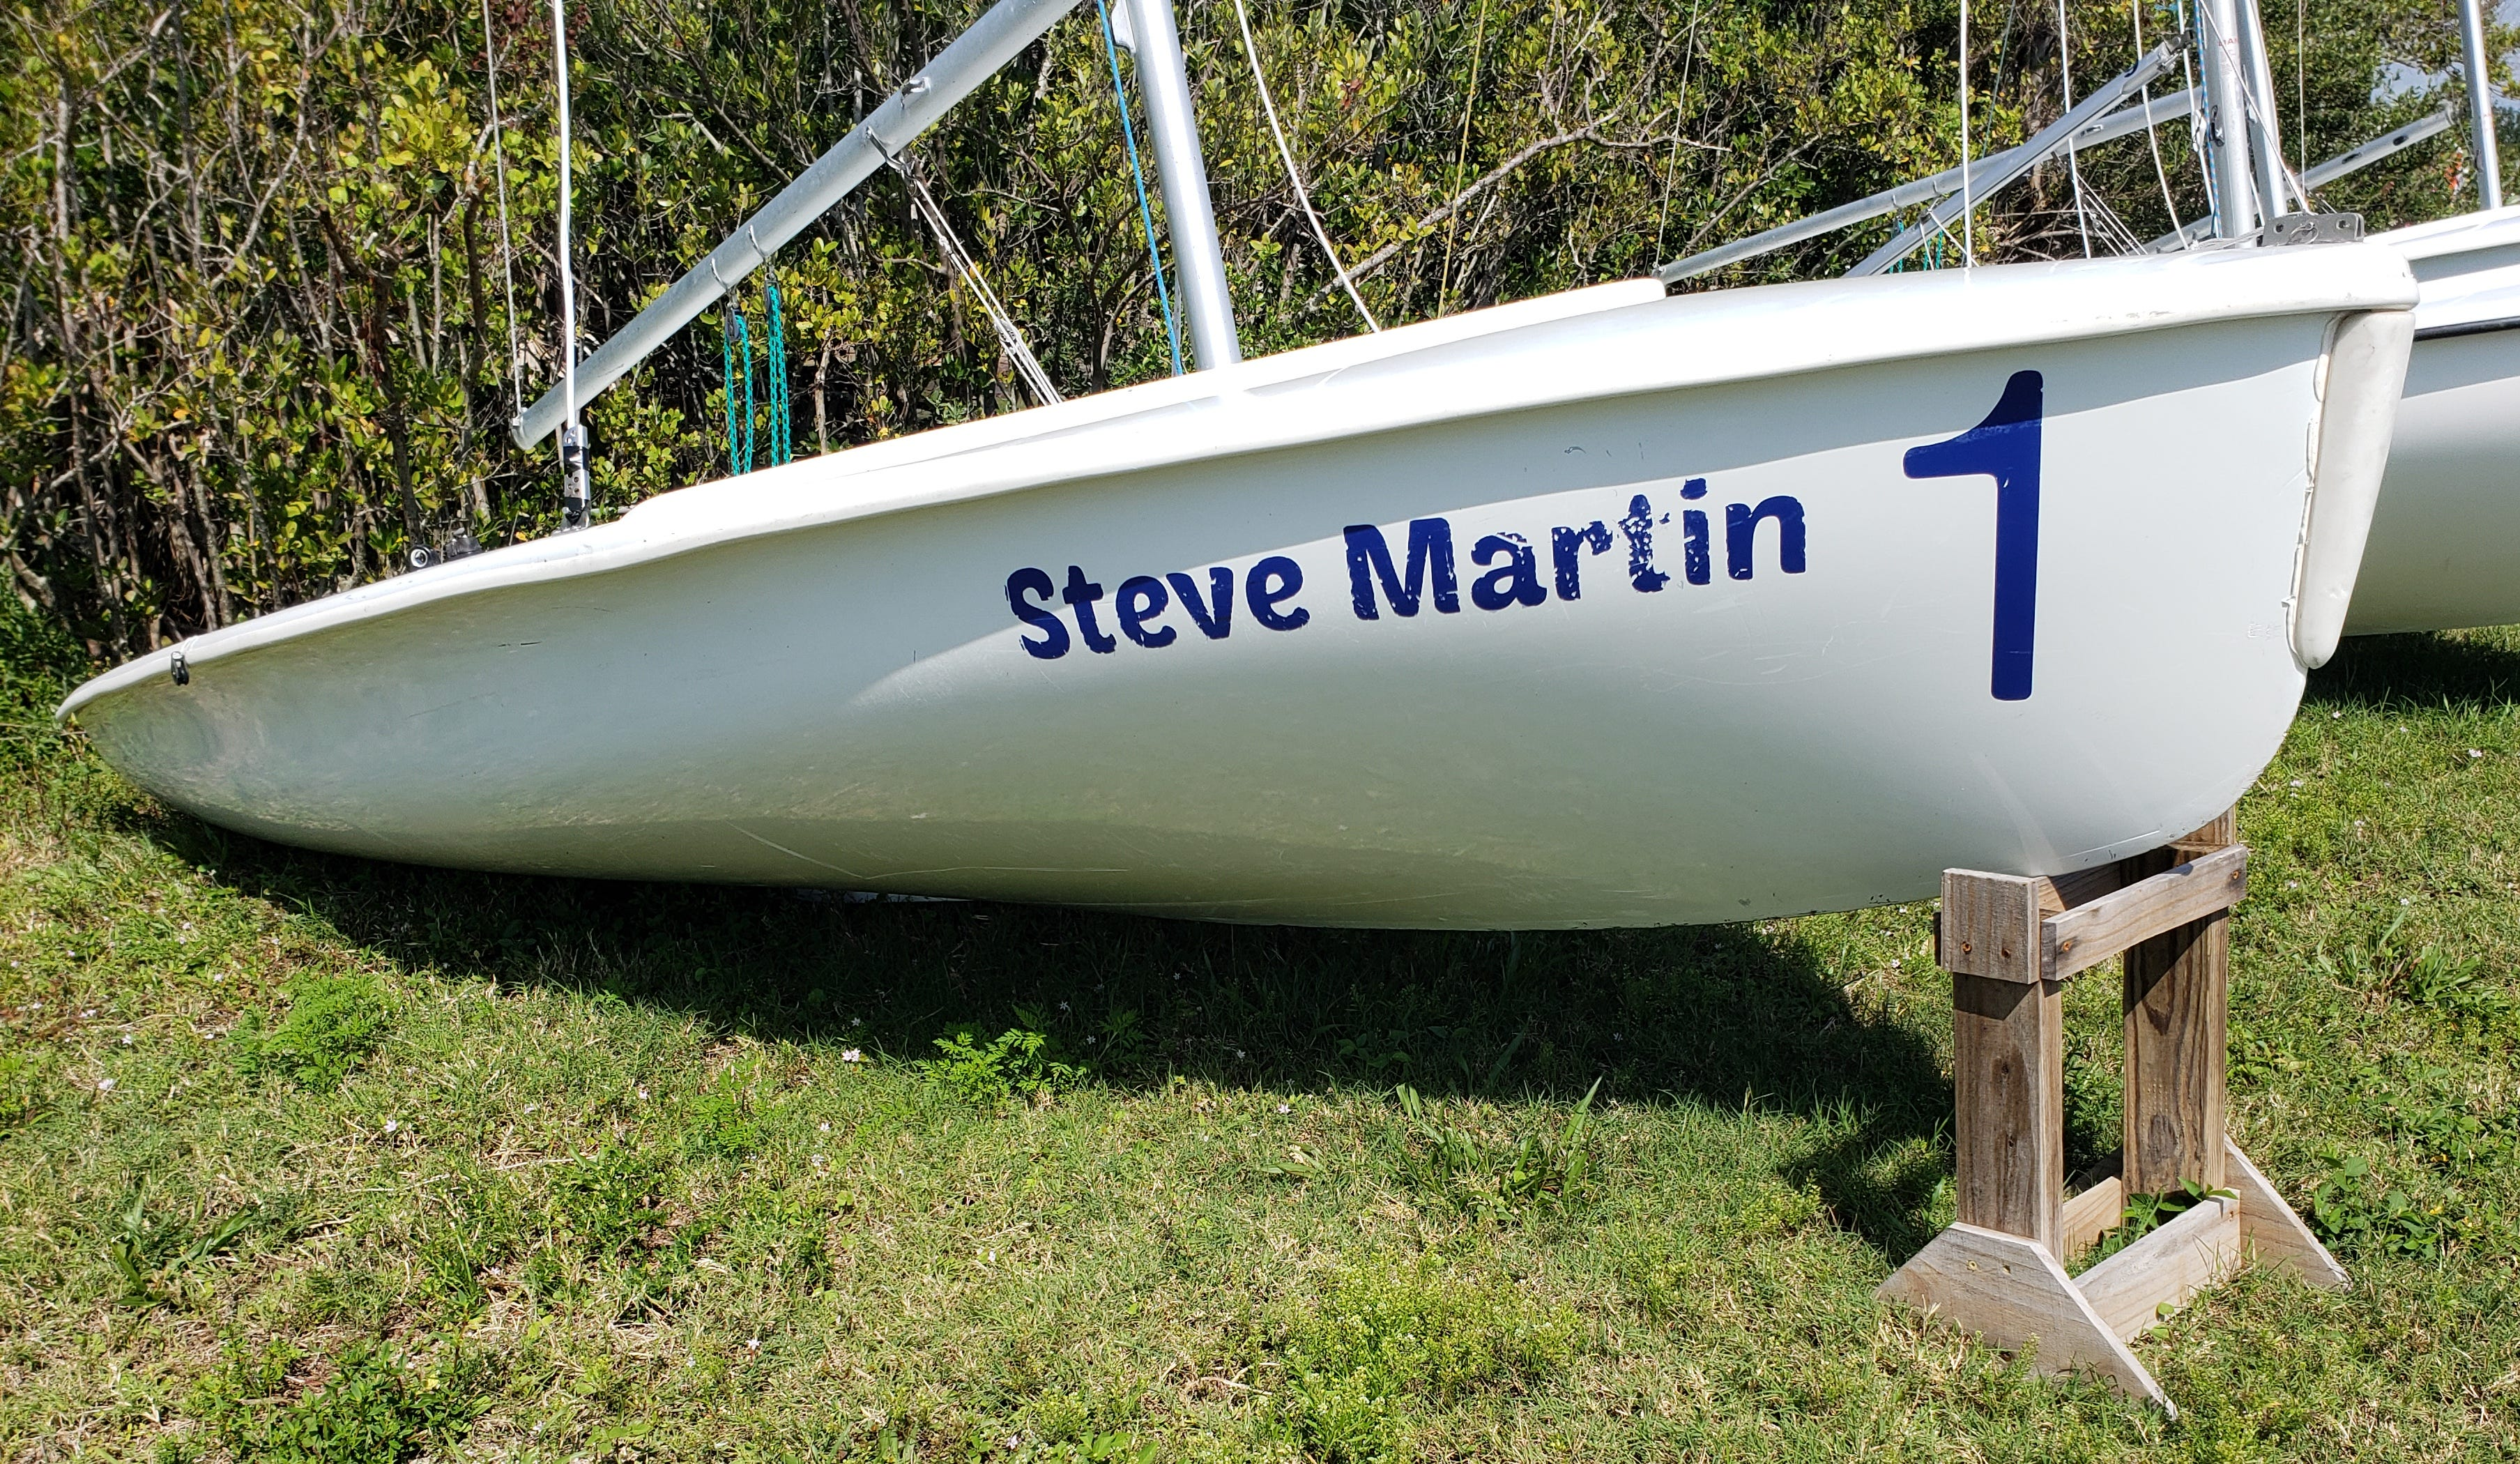 A Club 420 double-handed sailing dinghy dedicated in memoriam to Steve Martin, a longtime volunteer for the Youth Sailing Foundation of Indian River County sits ready Sunday in Vero Beach.